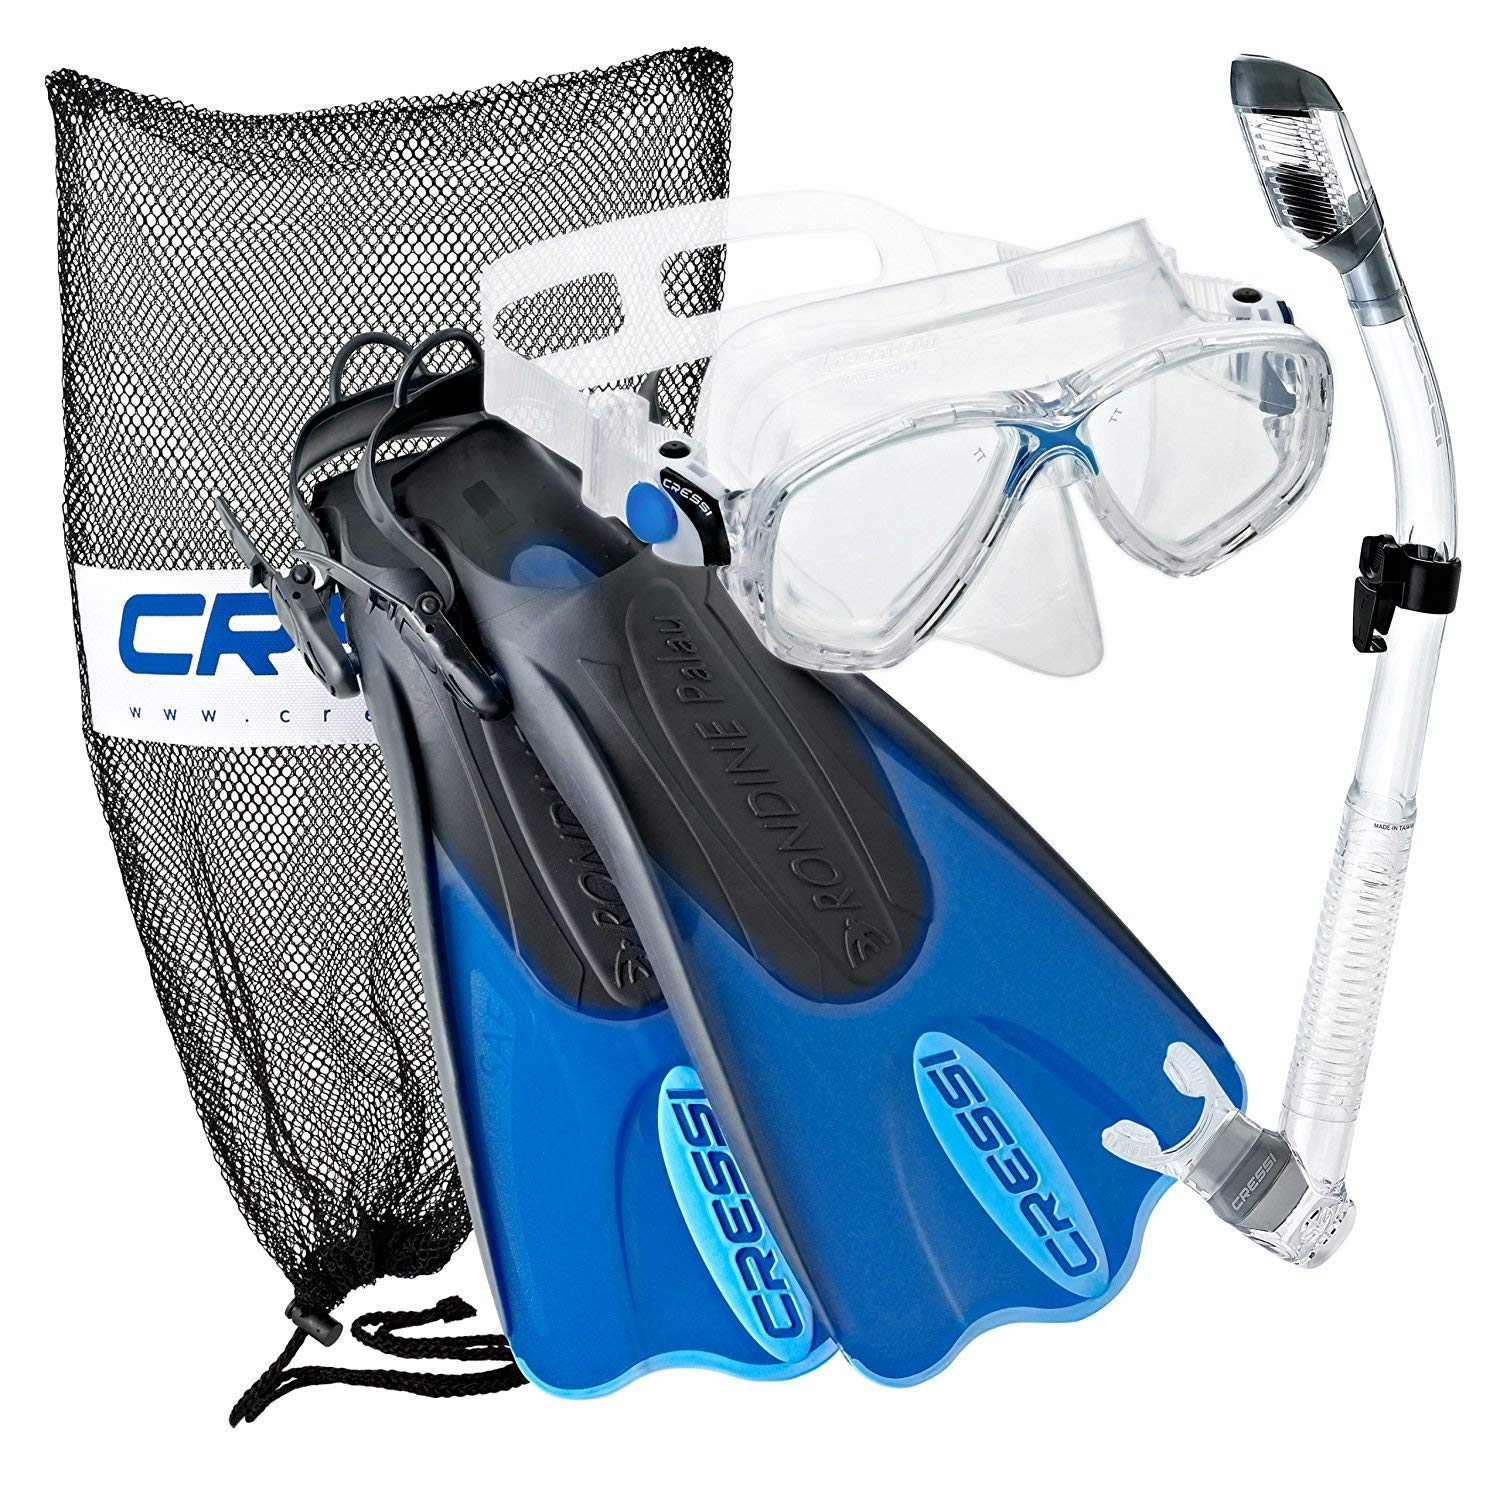 Cressi Palau Mask Fin Snorkel Set with Snorkeling Gear Bag, Designed and Manufactured in Italy (Blue, S/M | (Mens 4-7) (Womens 5-8))